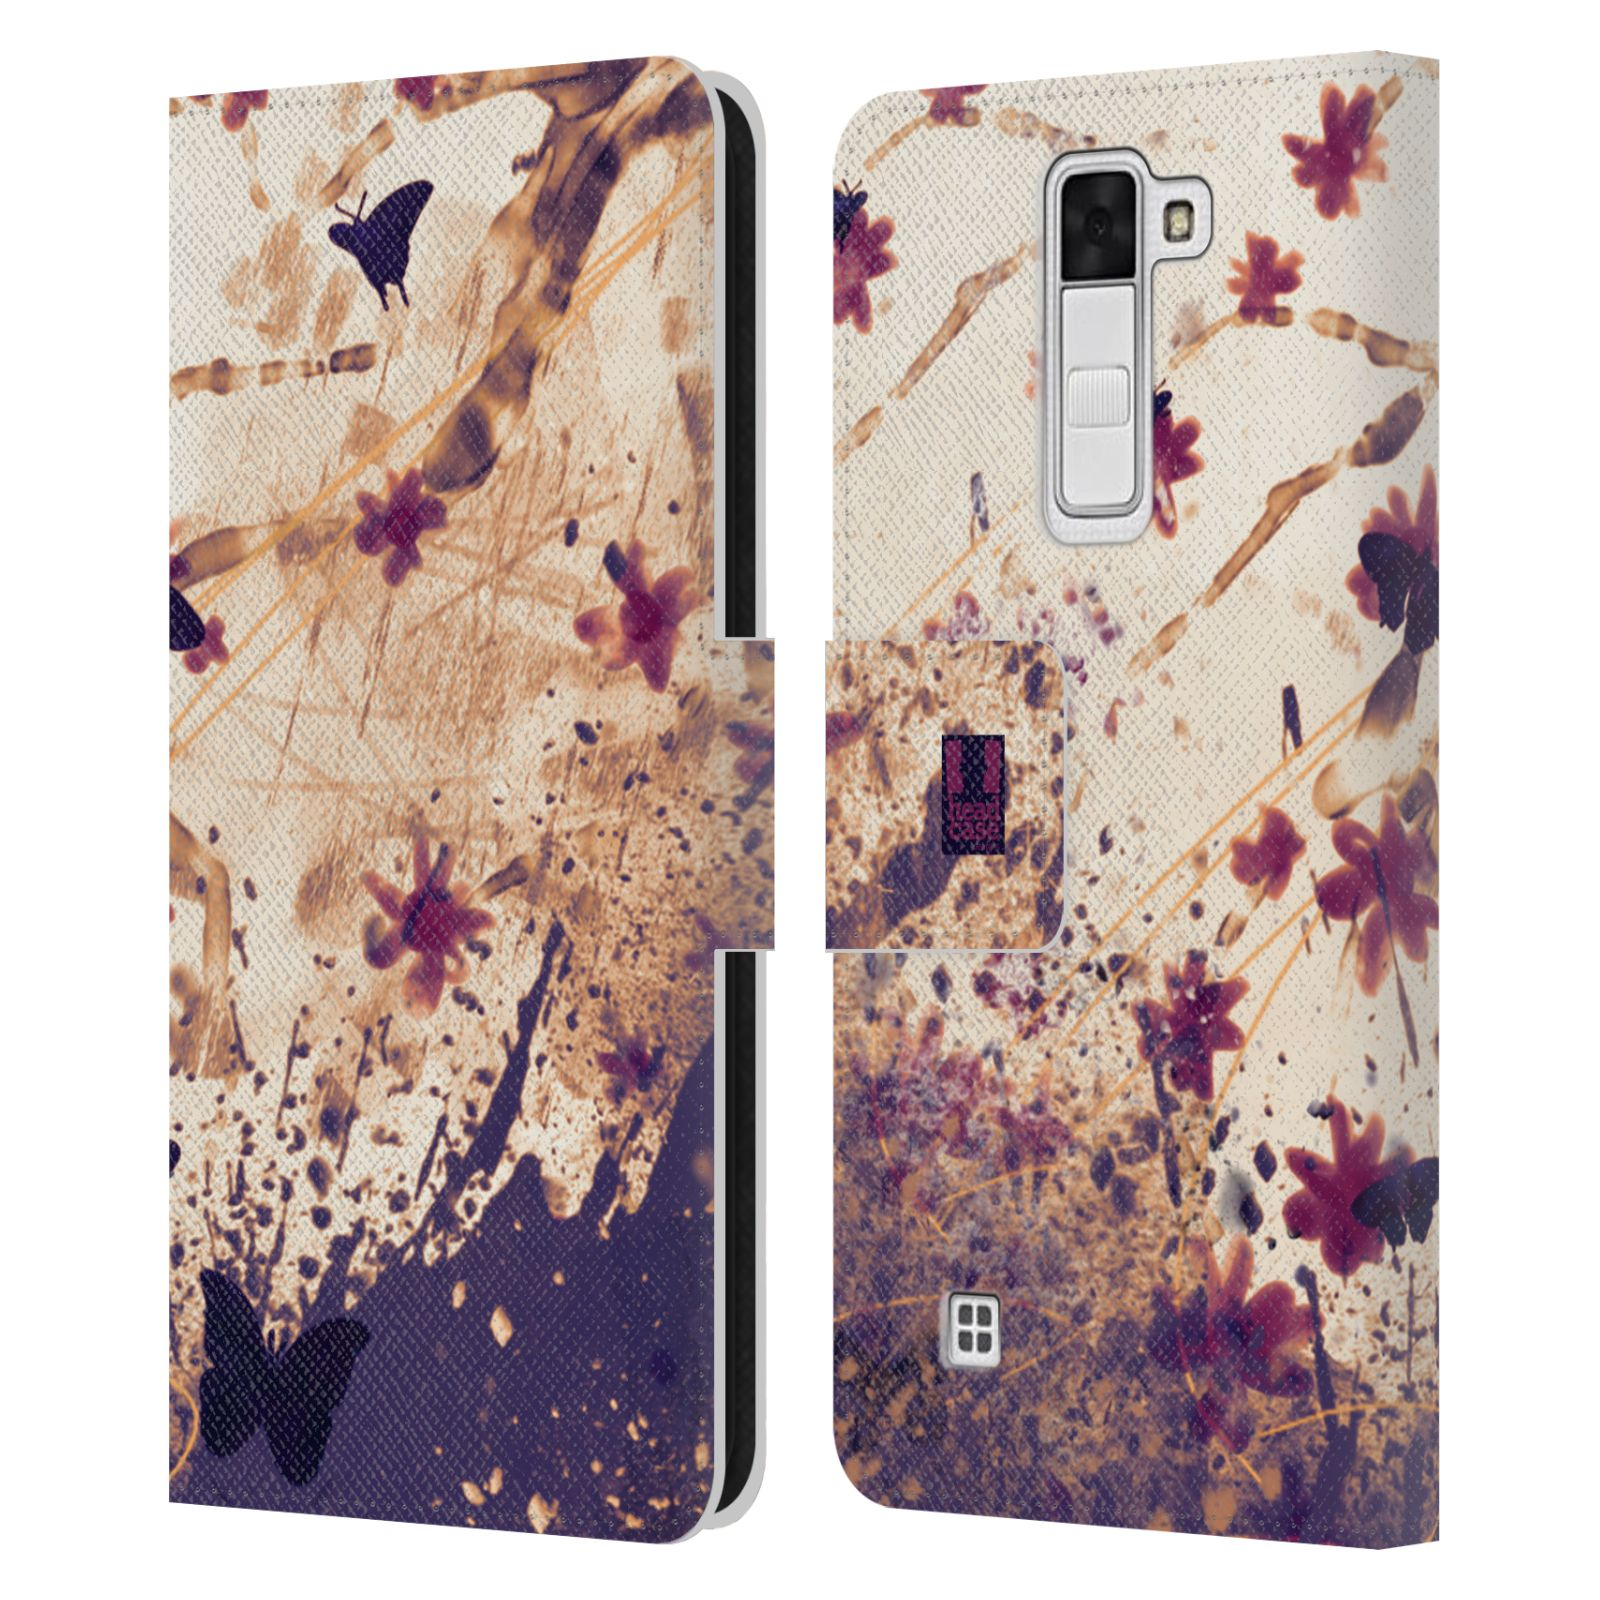 HEAD-CASE-DESIGNS-FLORAL-DRIPS-LEATHER-BOOK-WALLET-CASE-FOR-LG-K8-PHOENIX-2